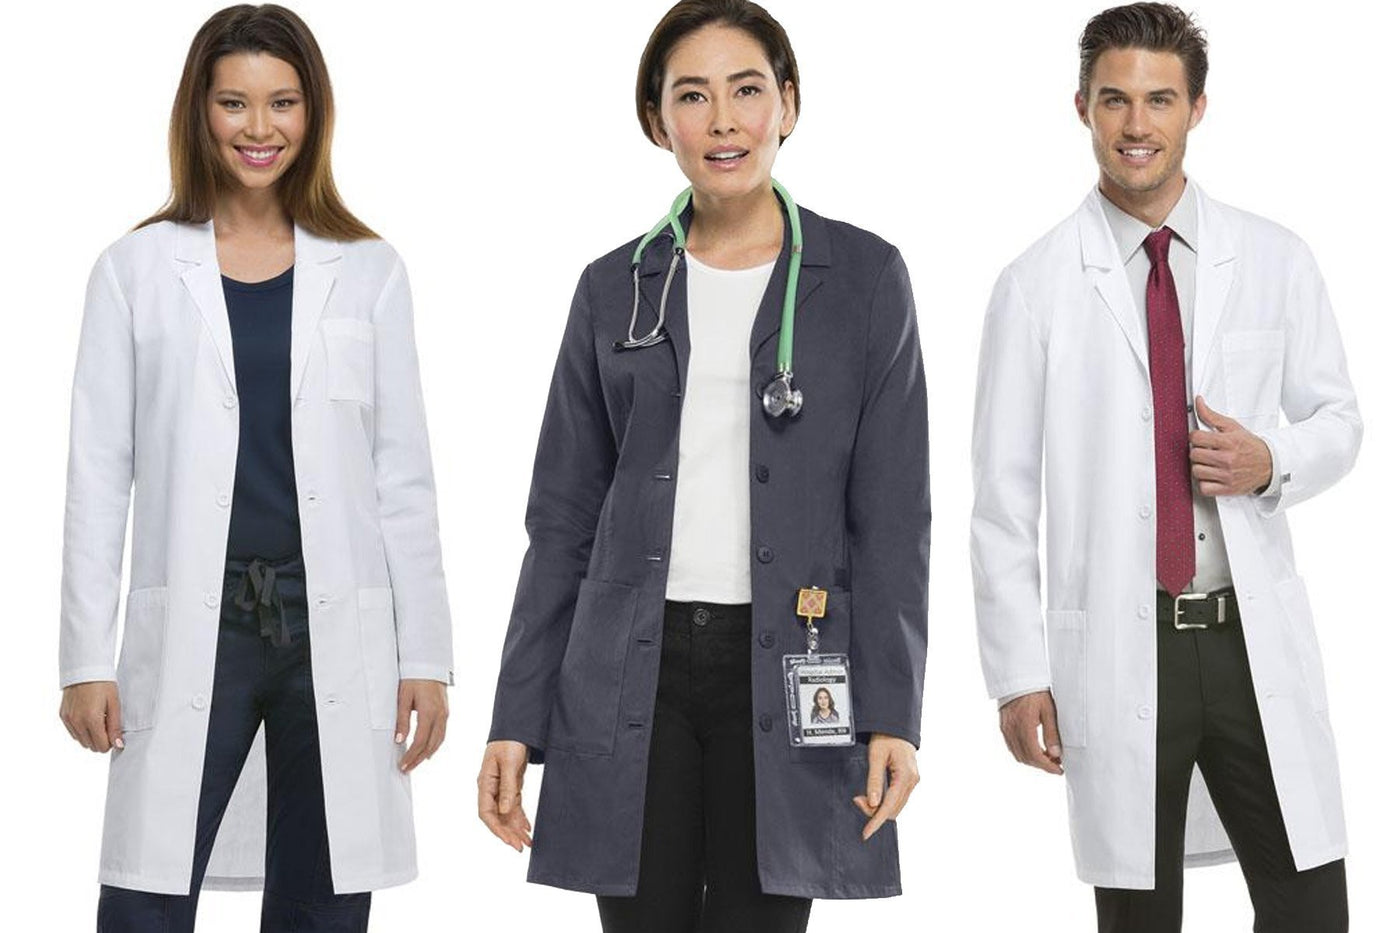 Wholesale and Retail Lab Coats